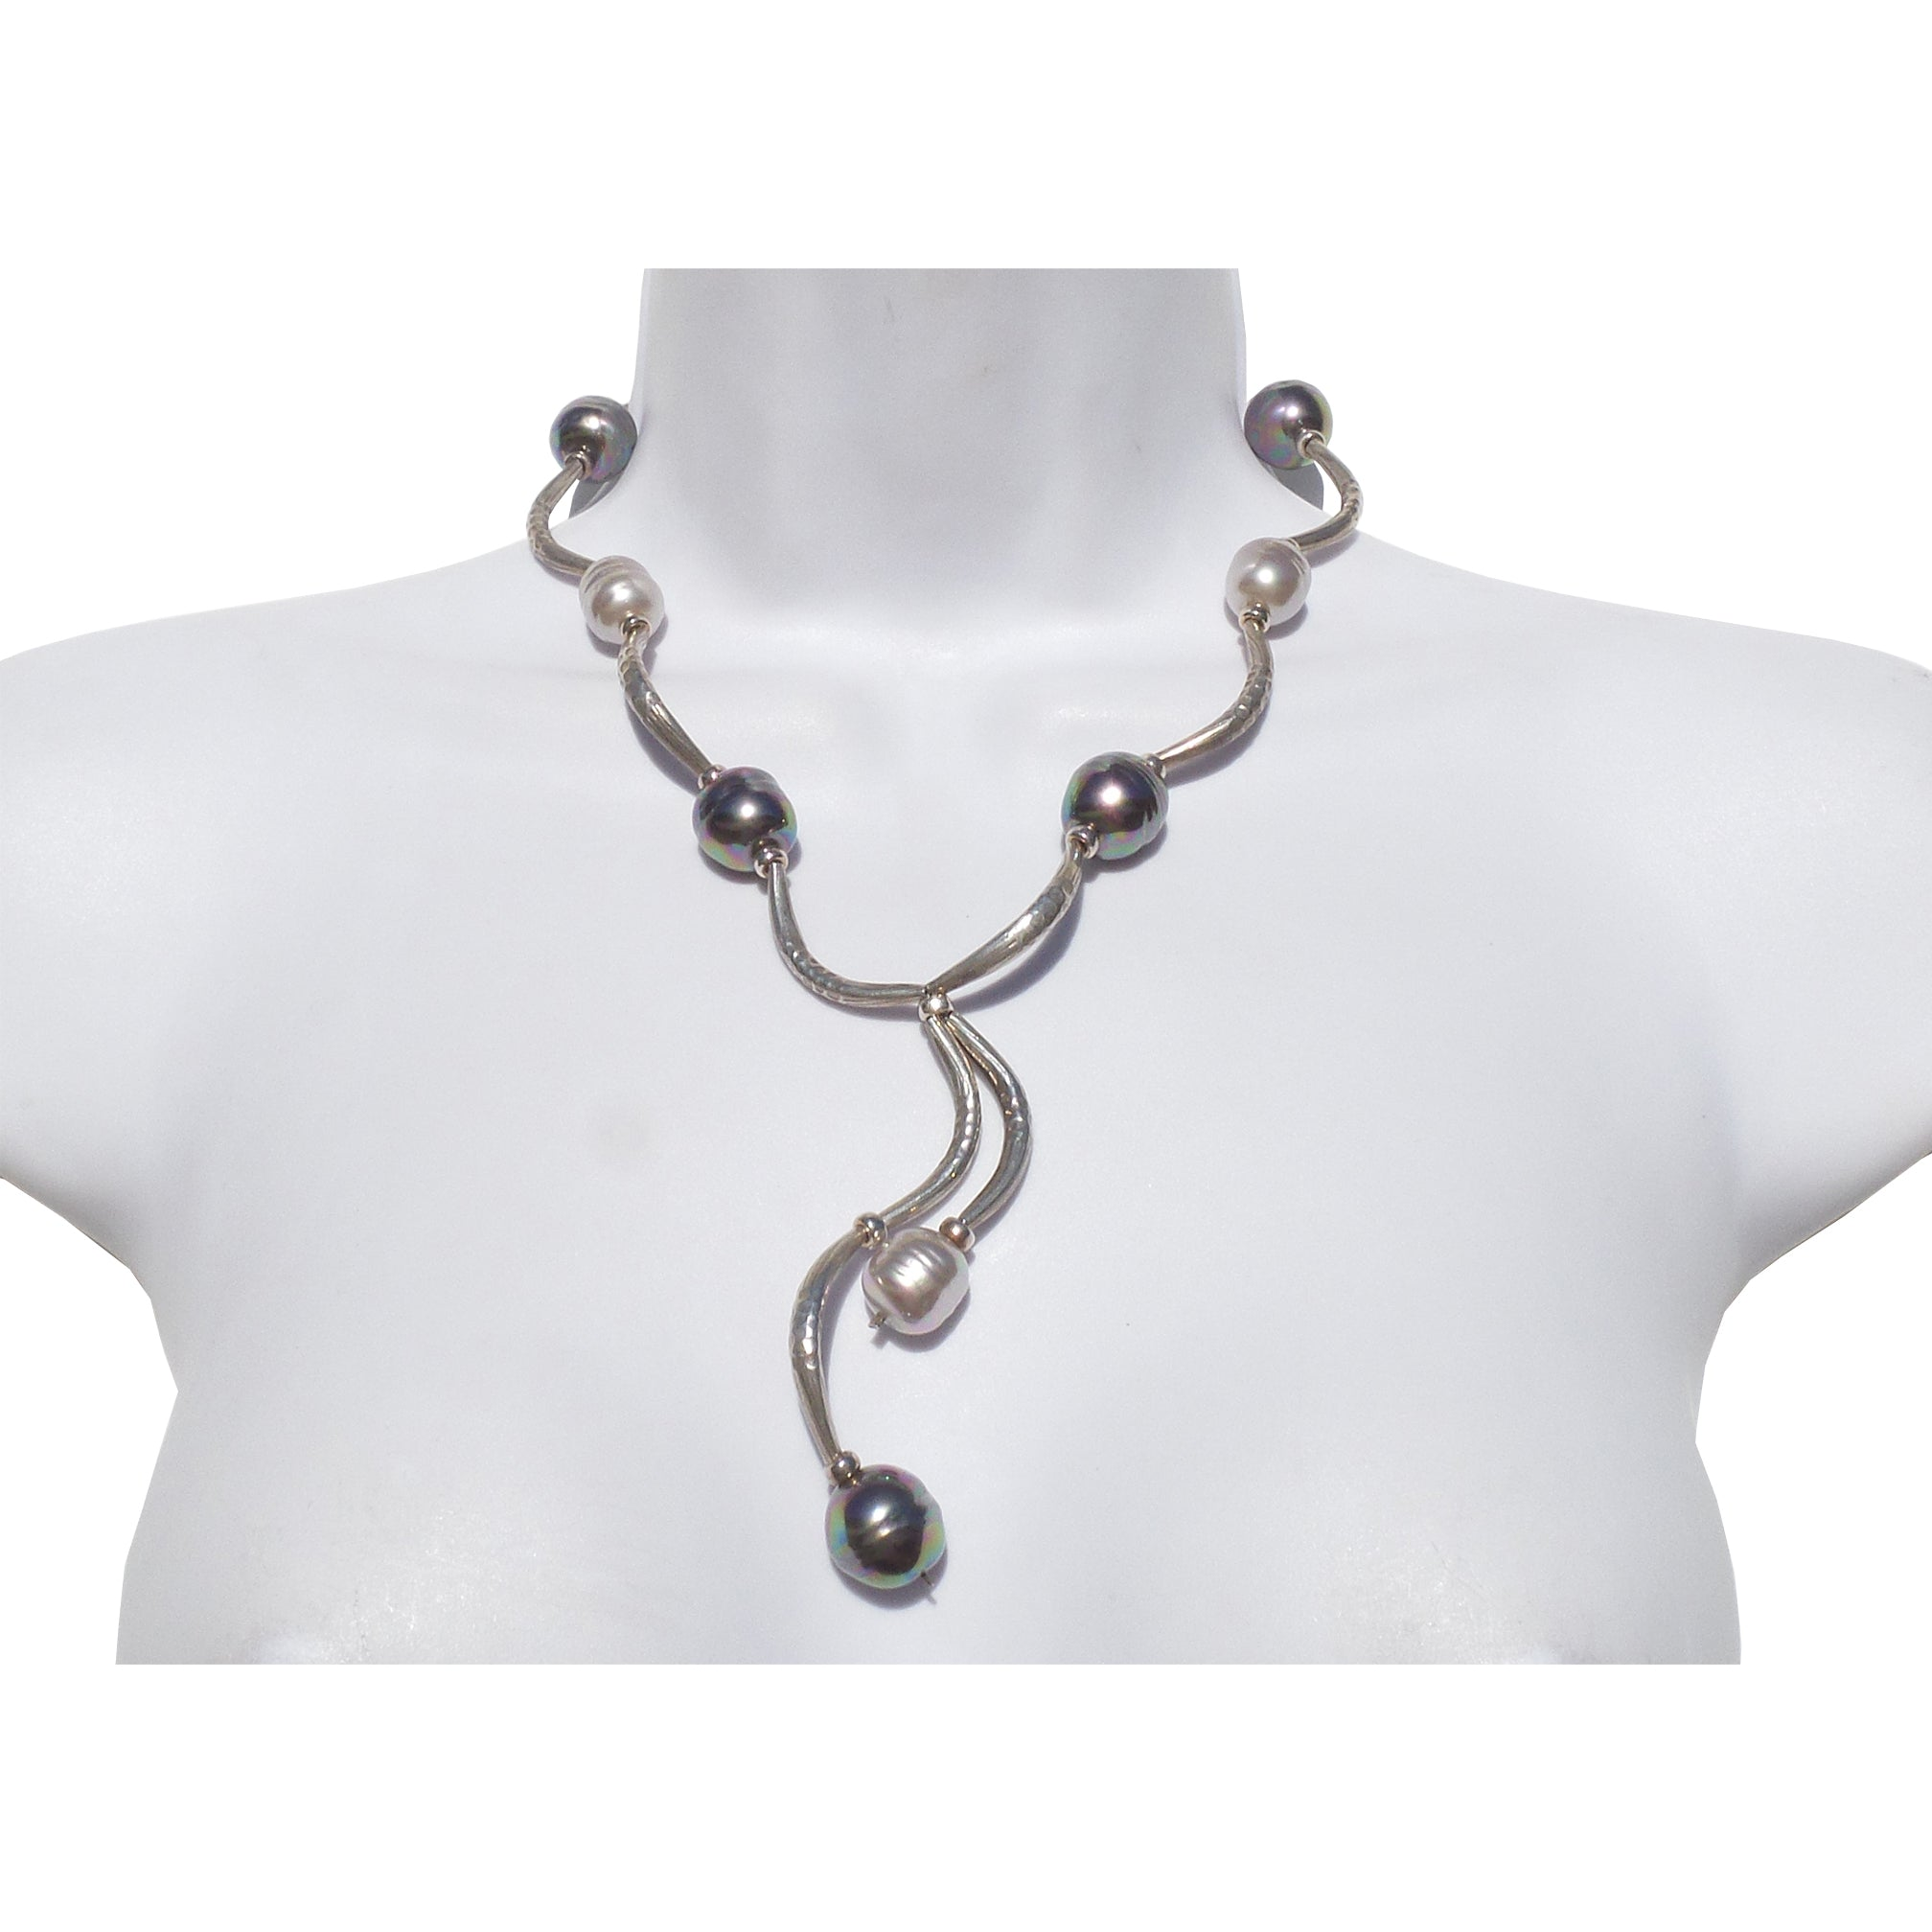 FRANCA Large Gray White Baroque Pearl Cured Carved Silver Lariat Twist Necklace